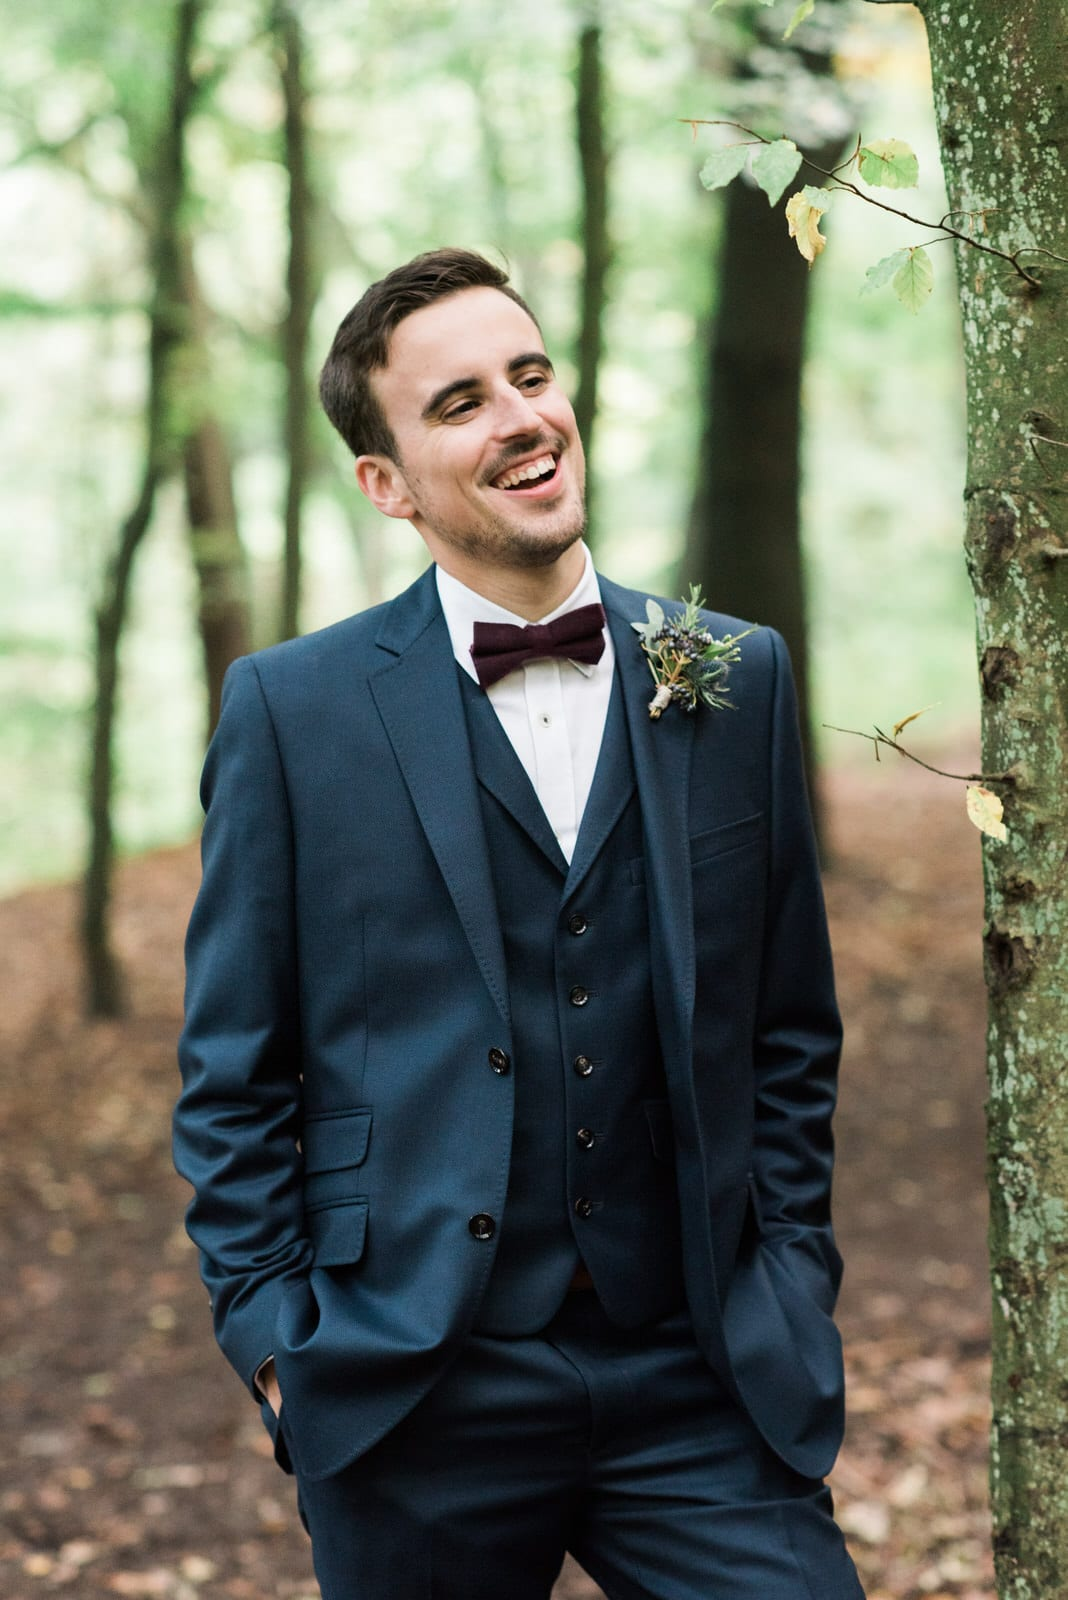 Groom portrait in blue suit laughing